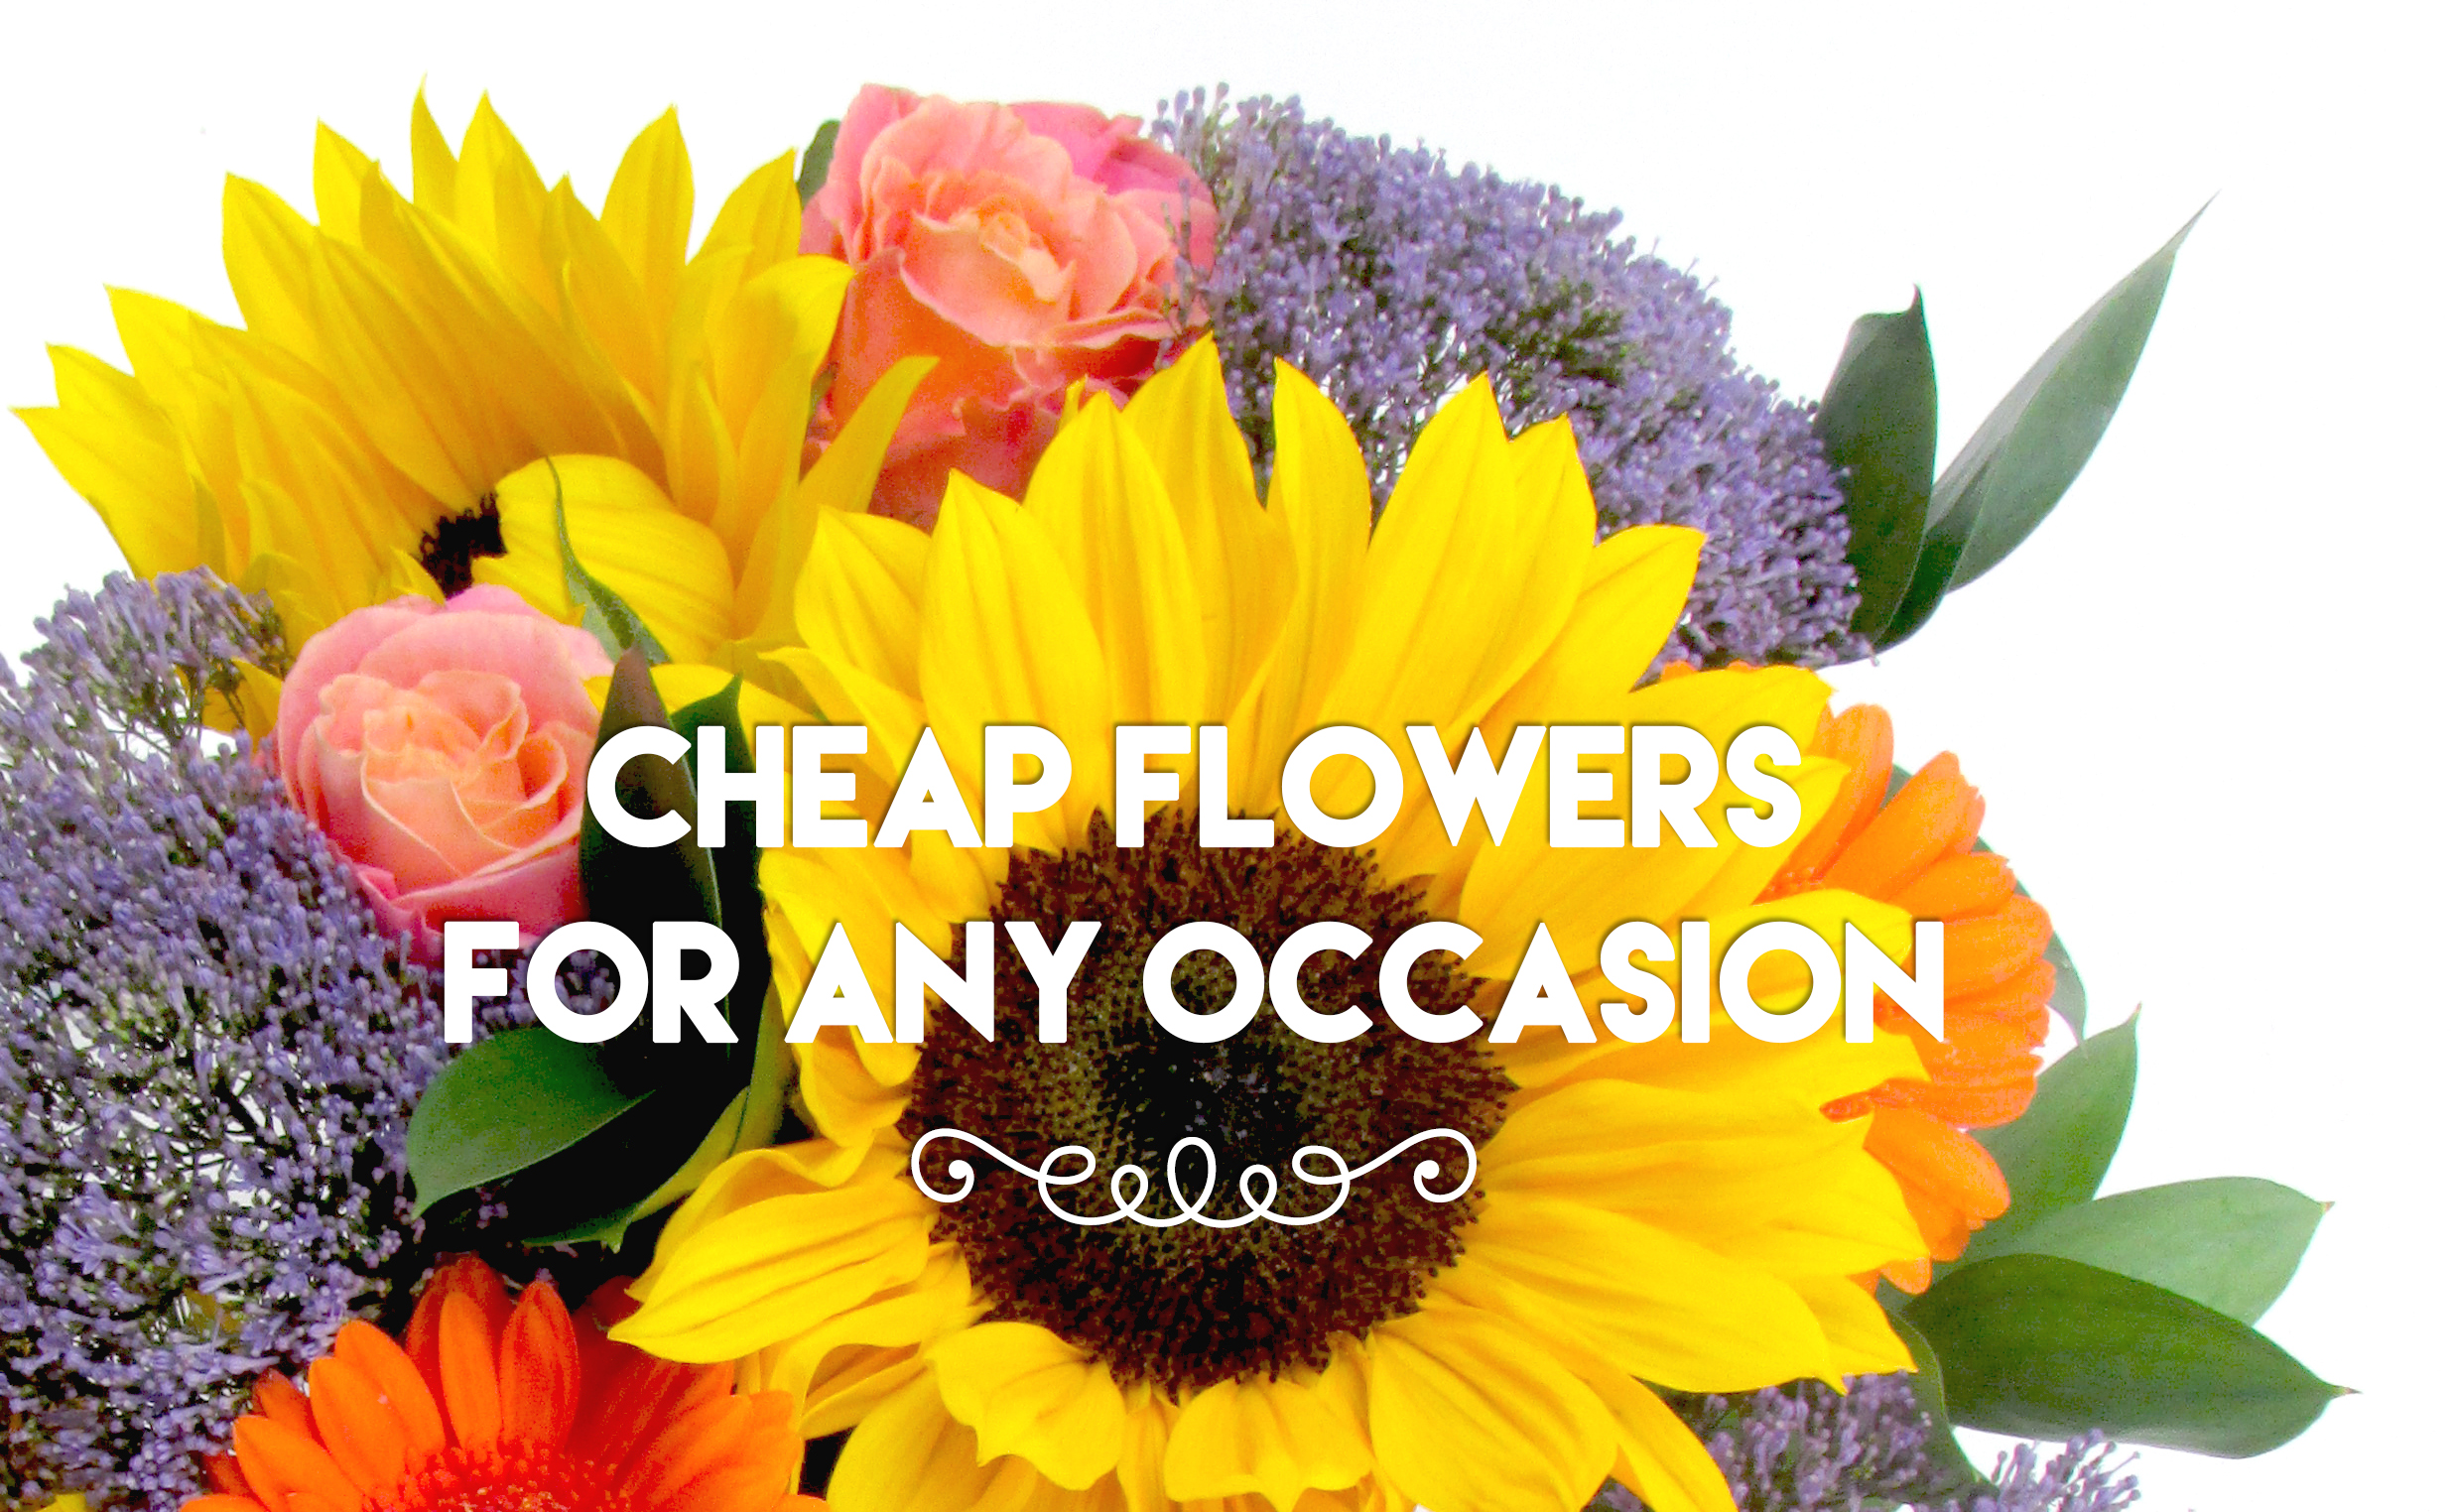 Cheap flowers for any occasion flower press cheap flowers for any occasion izmirmasajfo